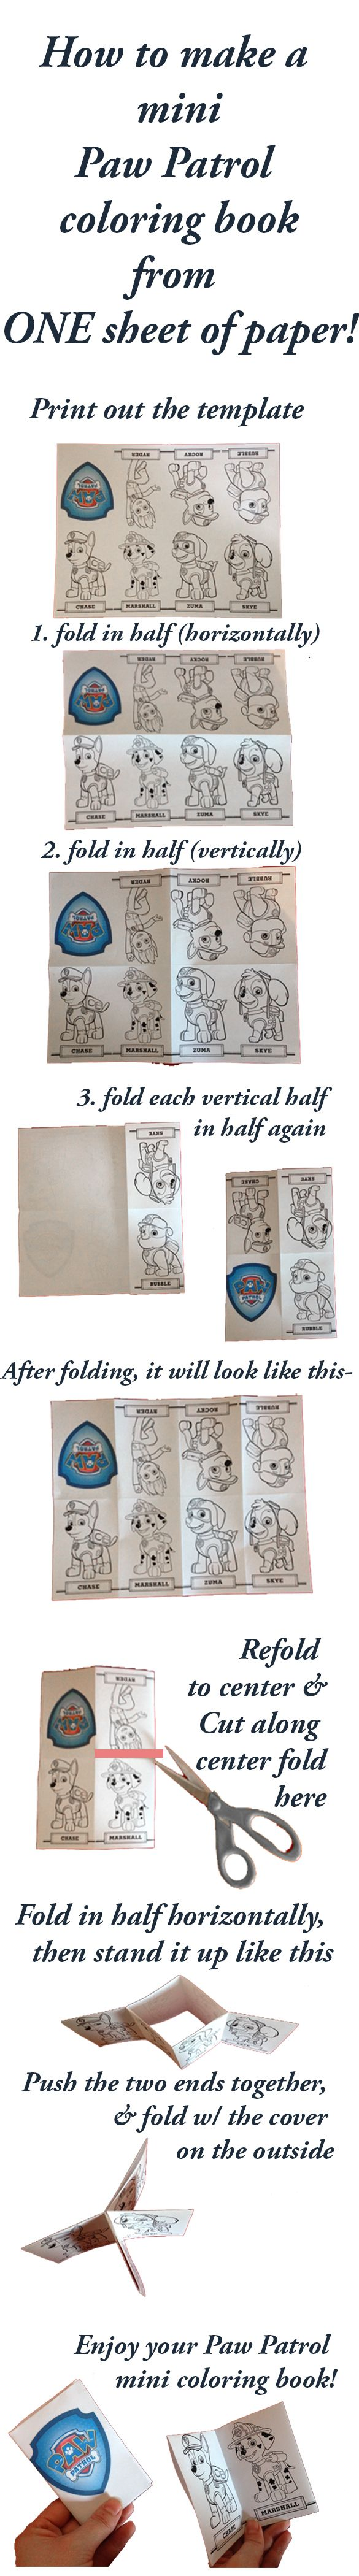 How to make a mini Paw Patrol coloring book from a single sheet of paper!